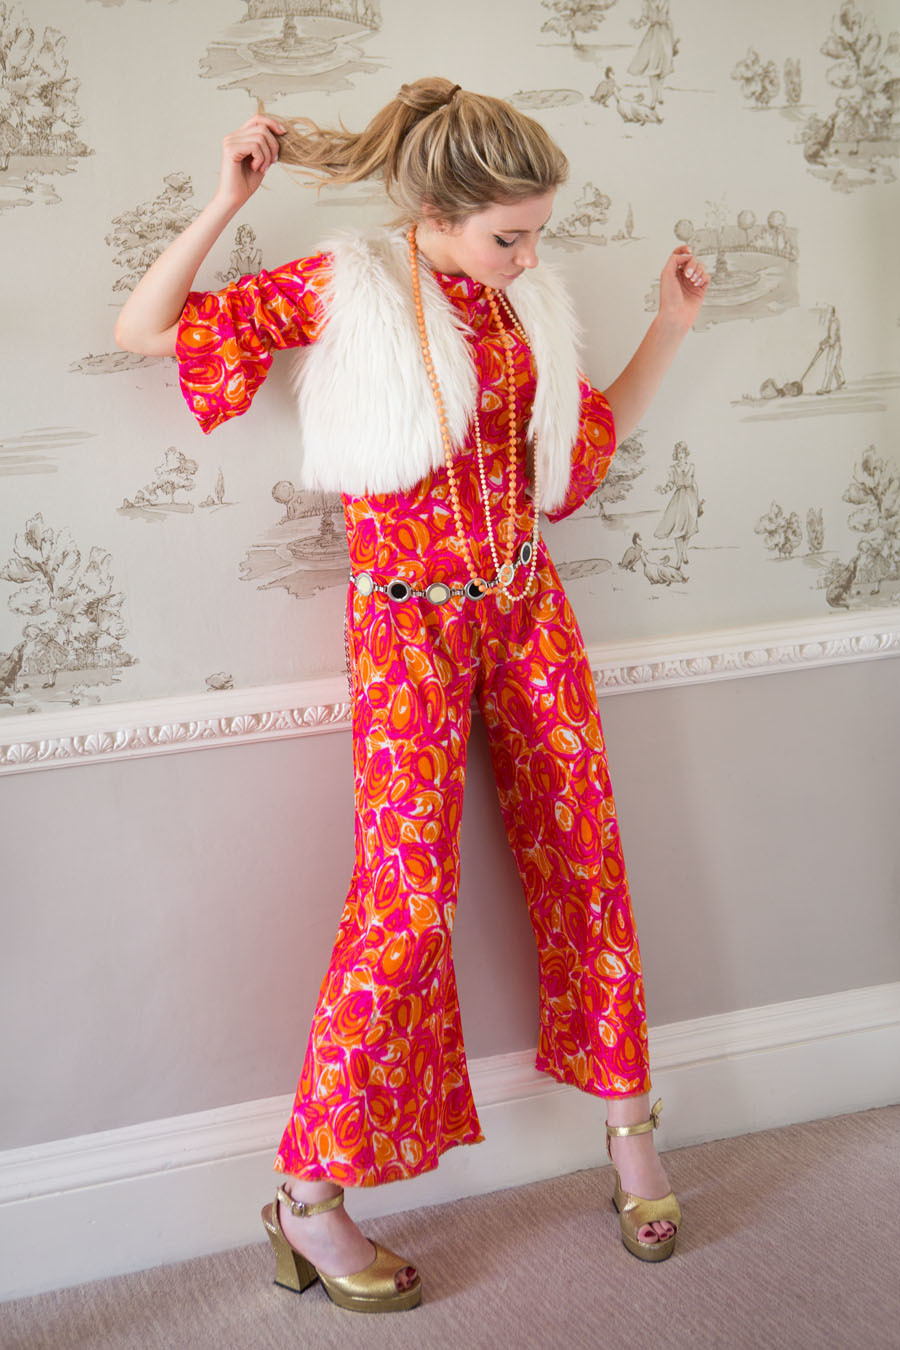 1970s fashion! / Photography by Somersetman / Uploaded 29th September 2018 @ 09:36 AM